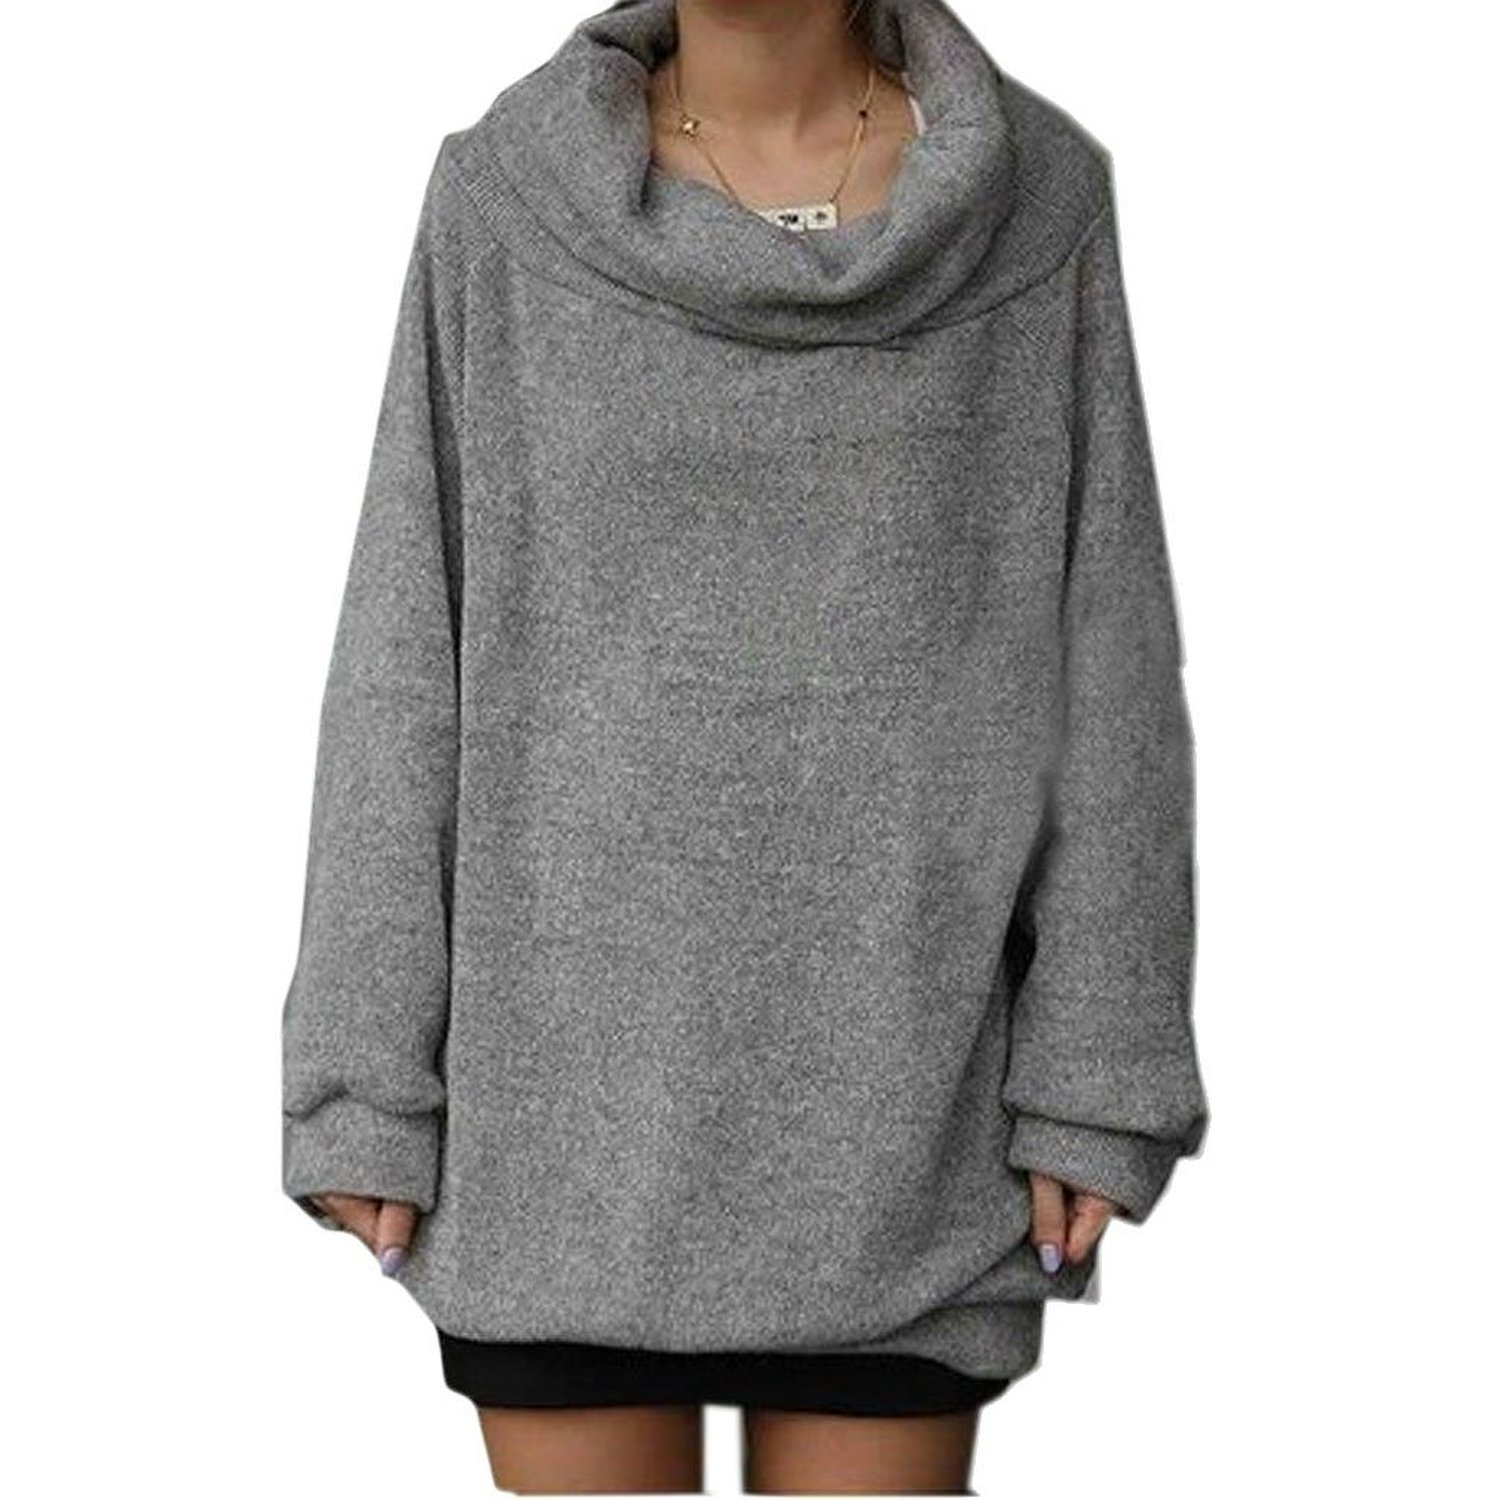 Najia symbol women's cowl neck pullover sweater showomen